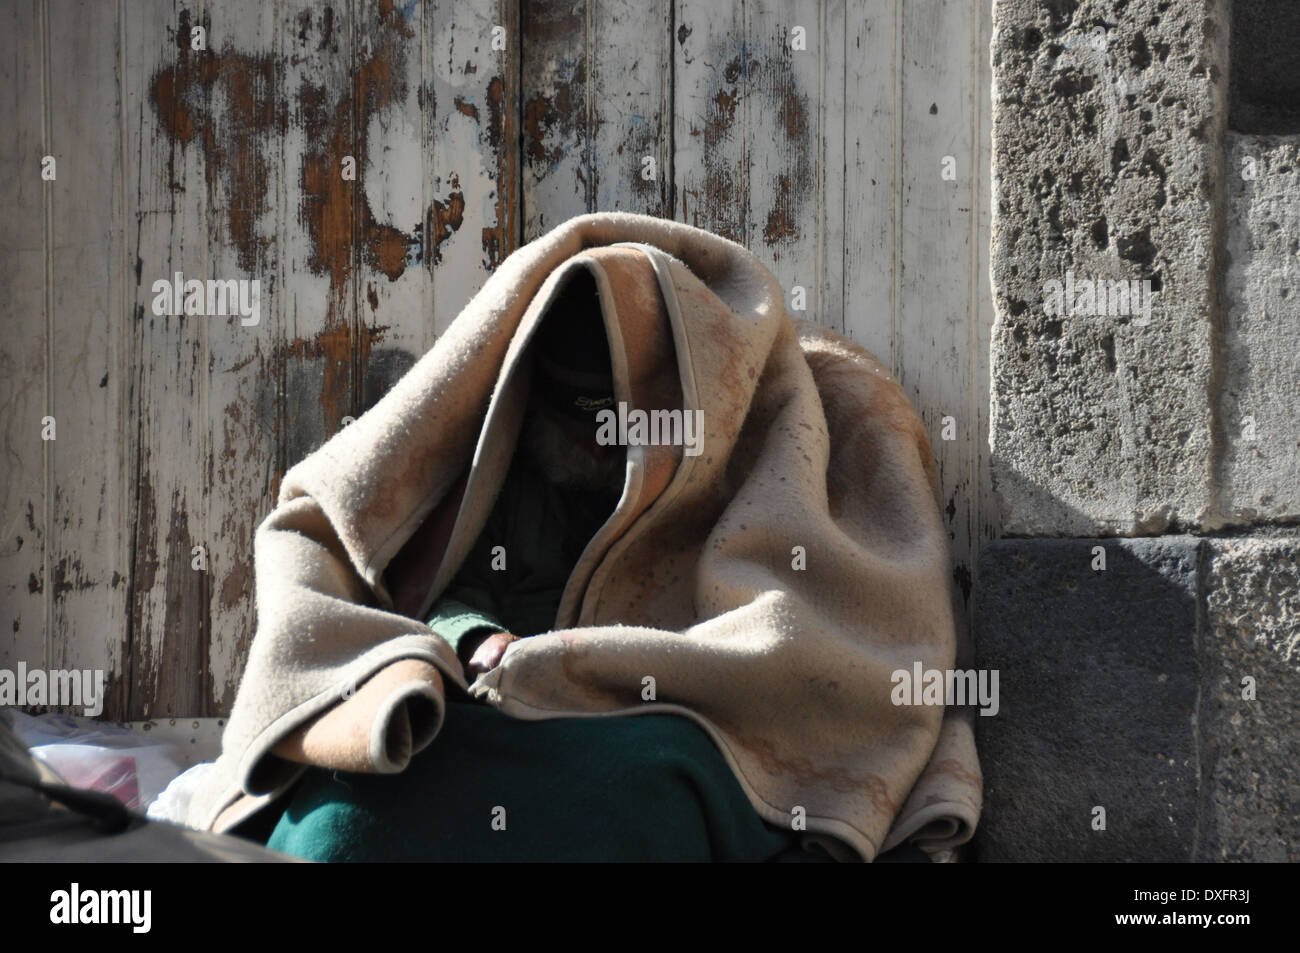 Homeless person hiding under a blanket, in Catania, Sicily, Italy - Stock Image